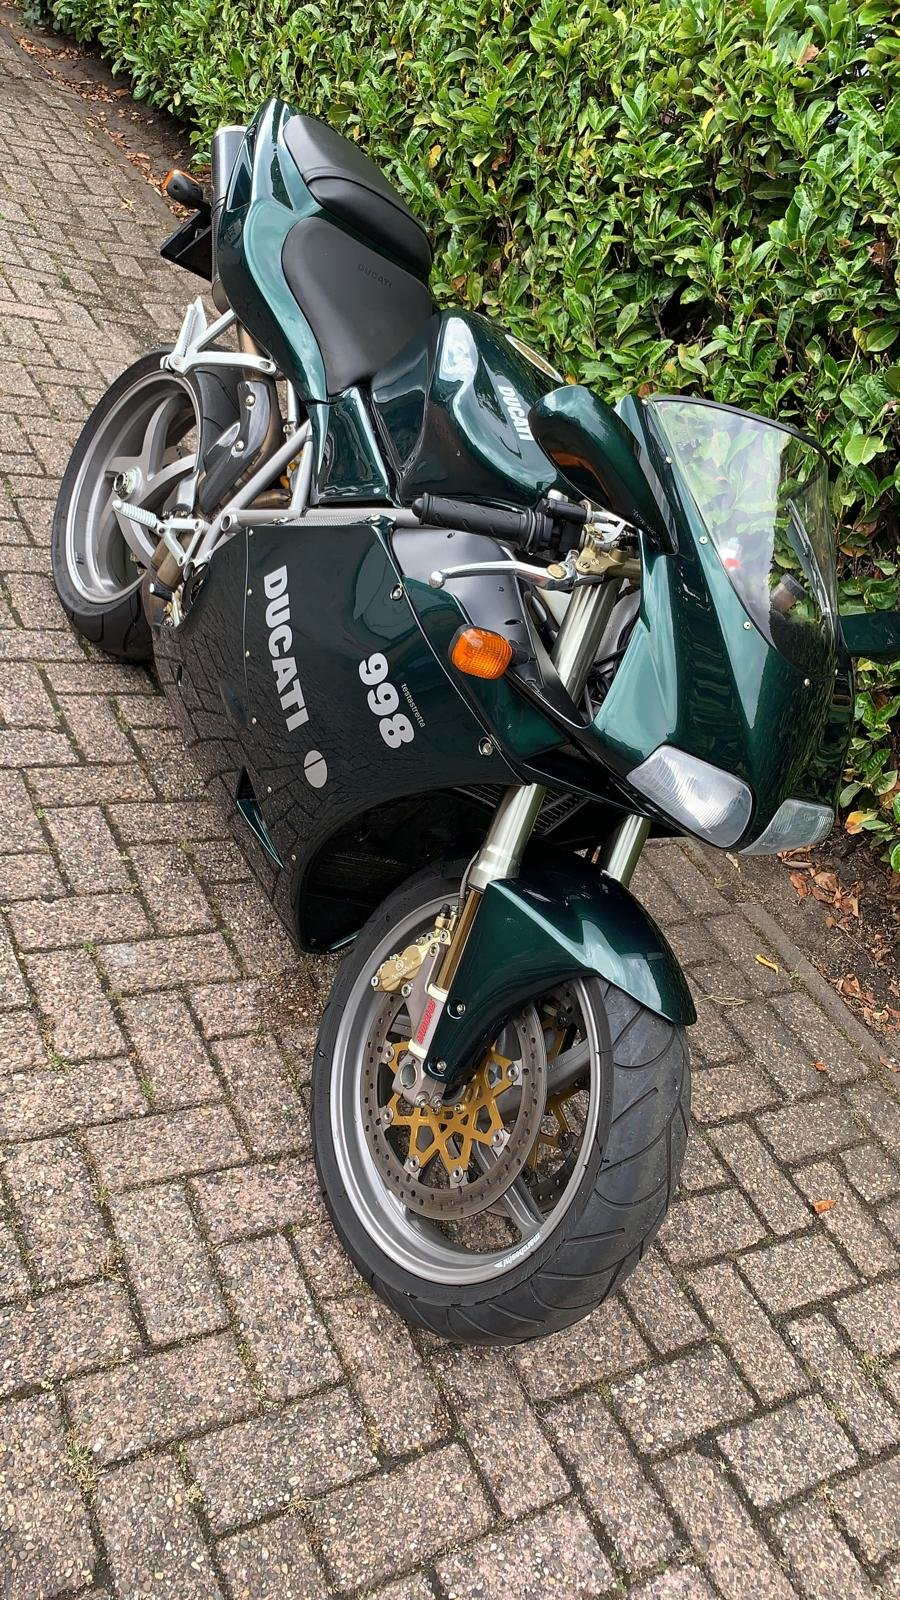 2004 Ducati 998 Matrix reloaded as new  For Sale (picture 6 of 6)